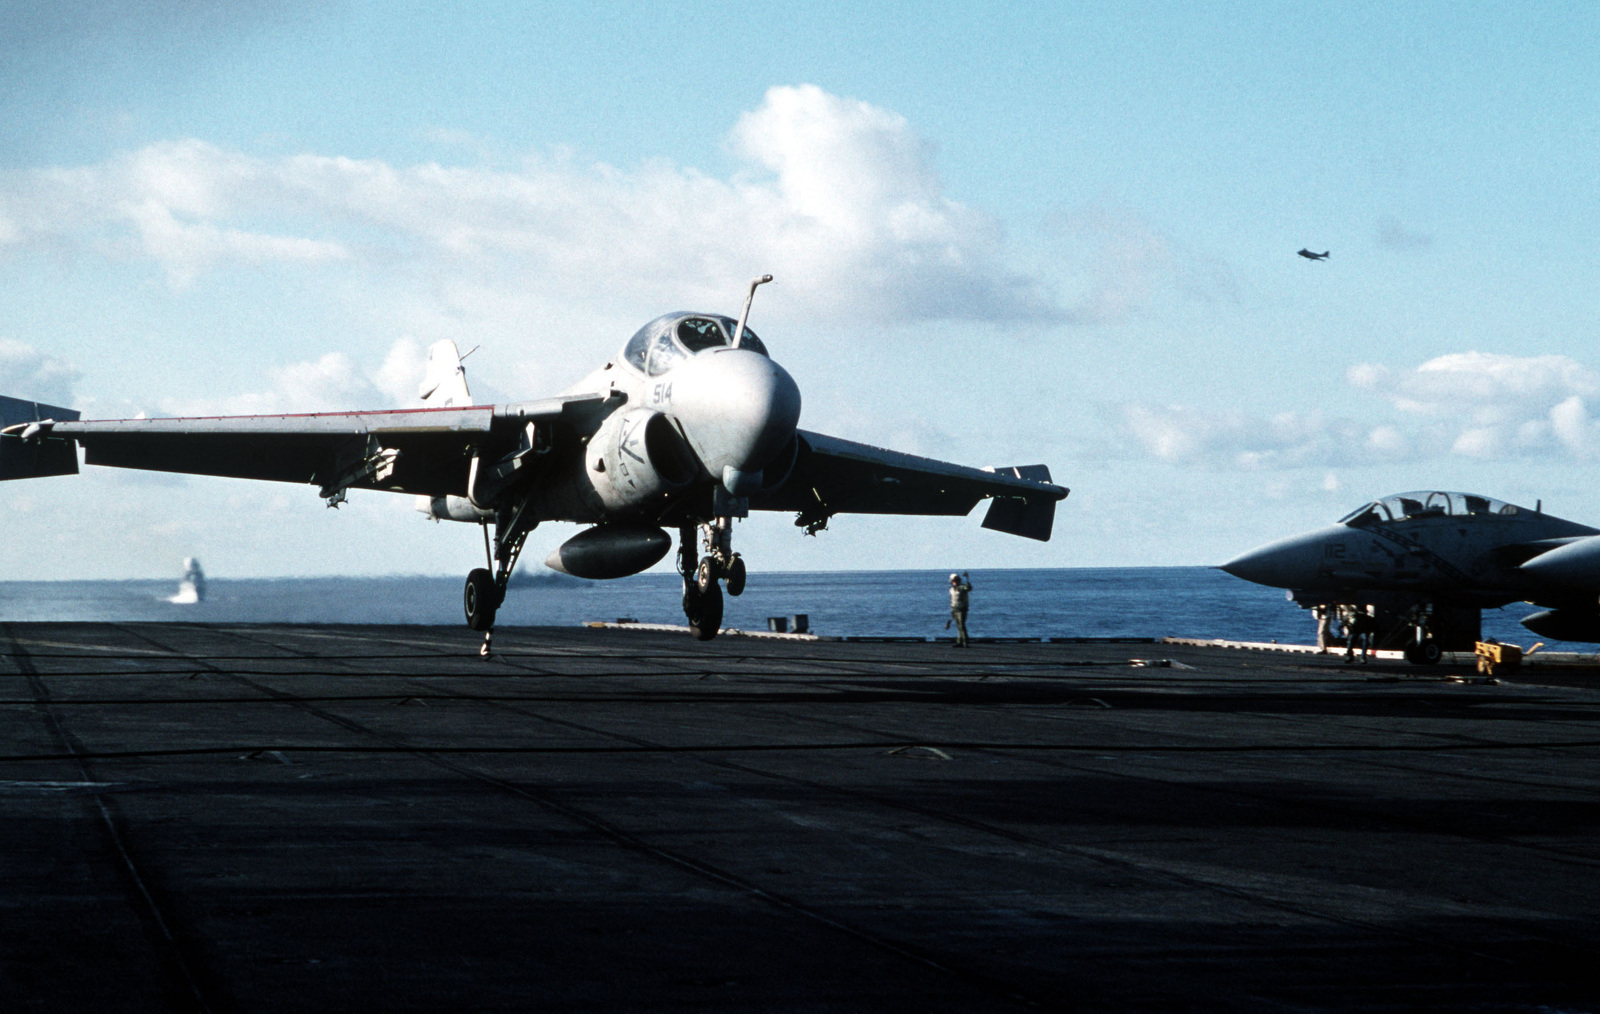 An A-6E Intruder aircraft catches the arresting cable as it lands aboard the aircraft carrier USS AMERICA (CV-66) during exercise North Star '91. The NATO exercise tests the ability of participating forces to respond to multiple threats in a harsh environment